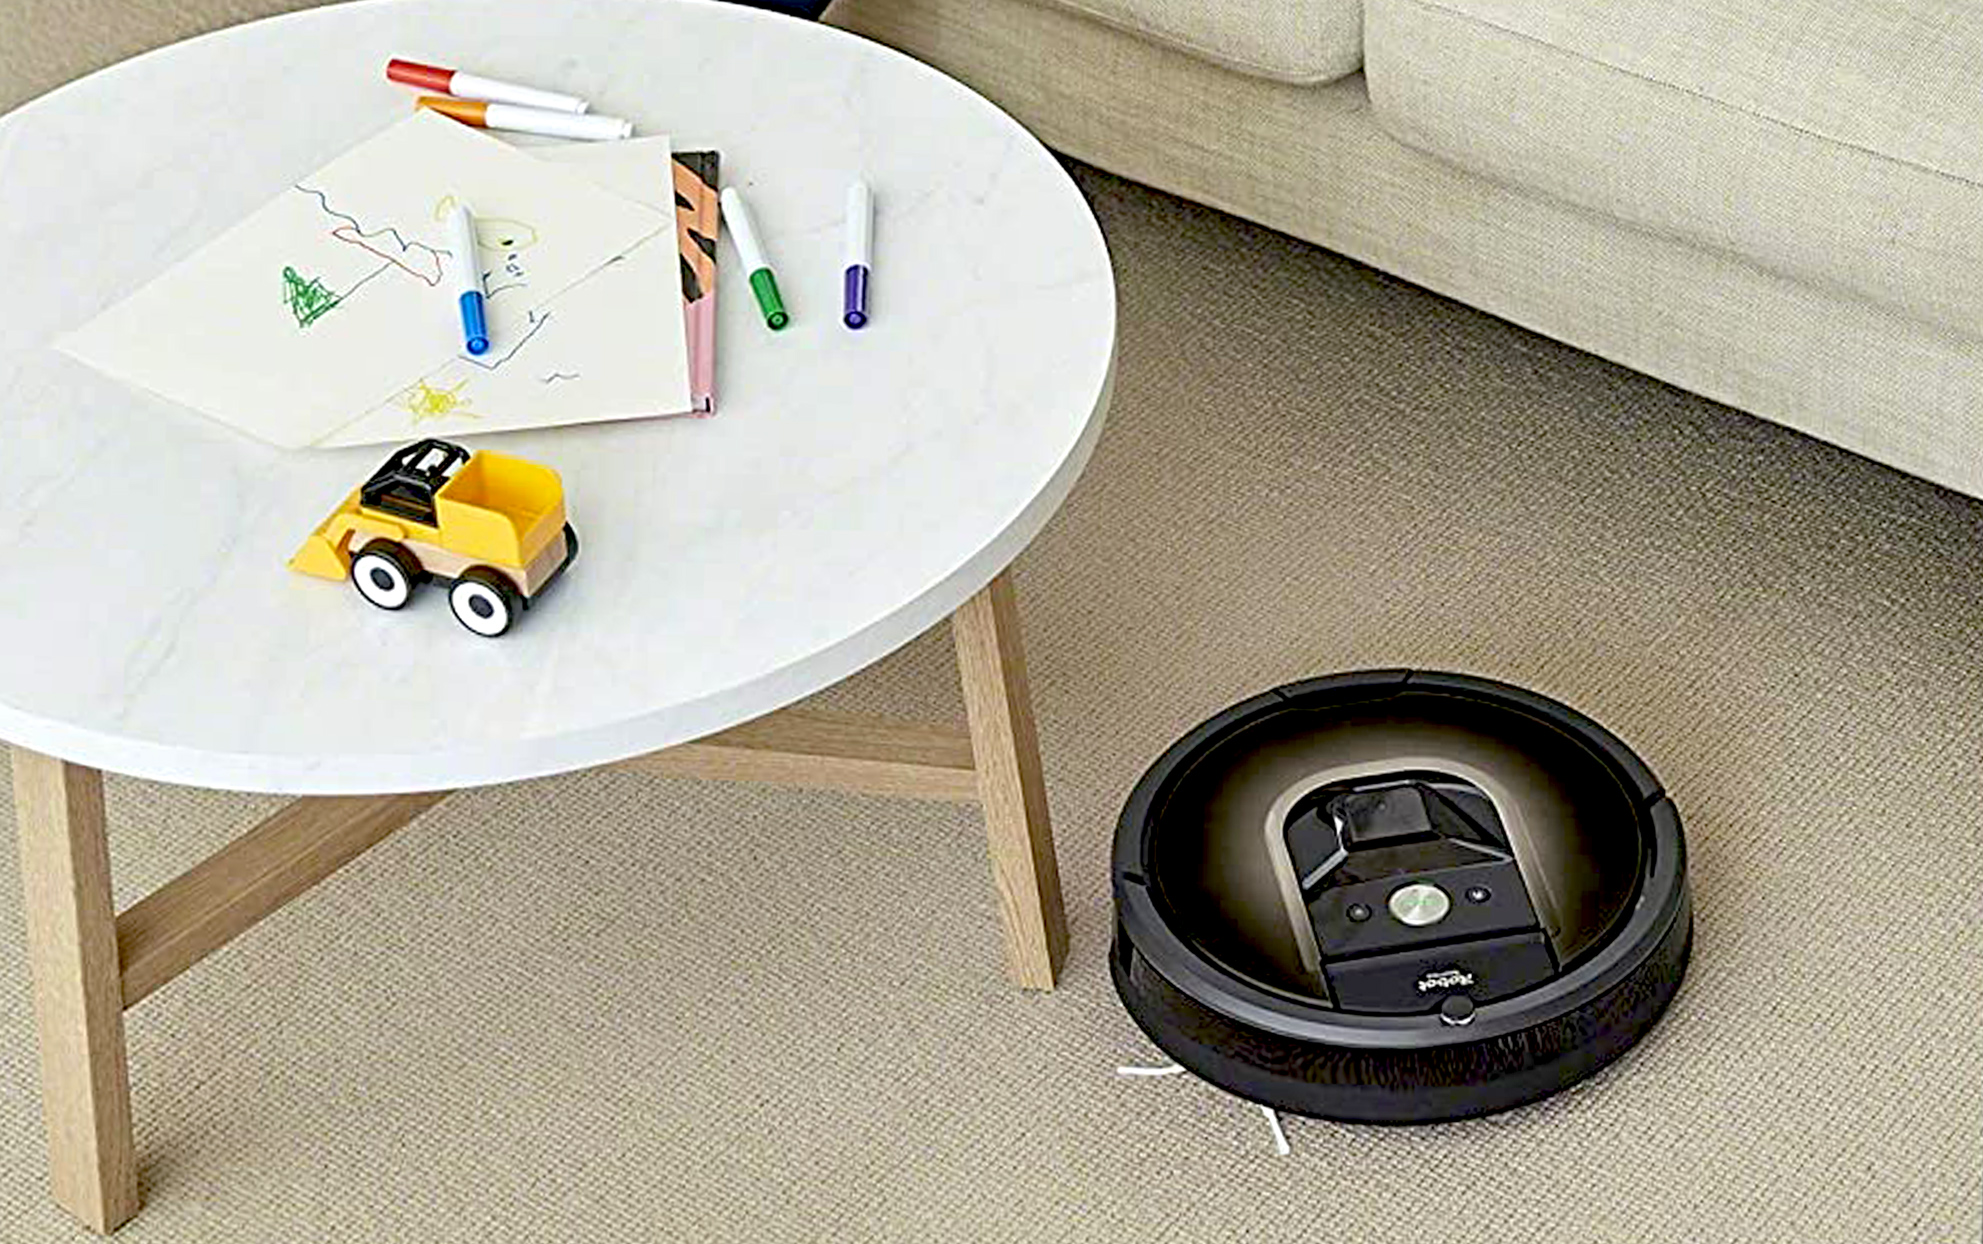 iRobot Roomba Vacuum on carpet near a sofa and table